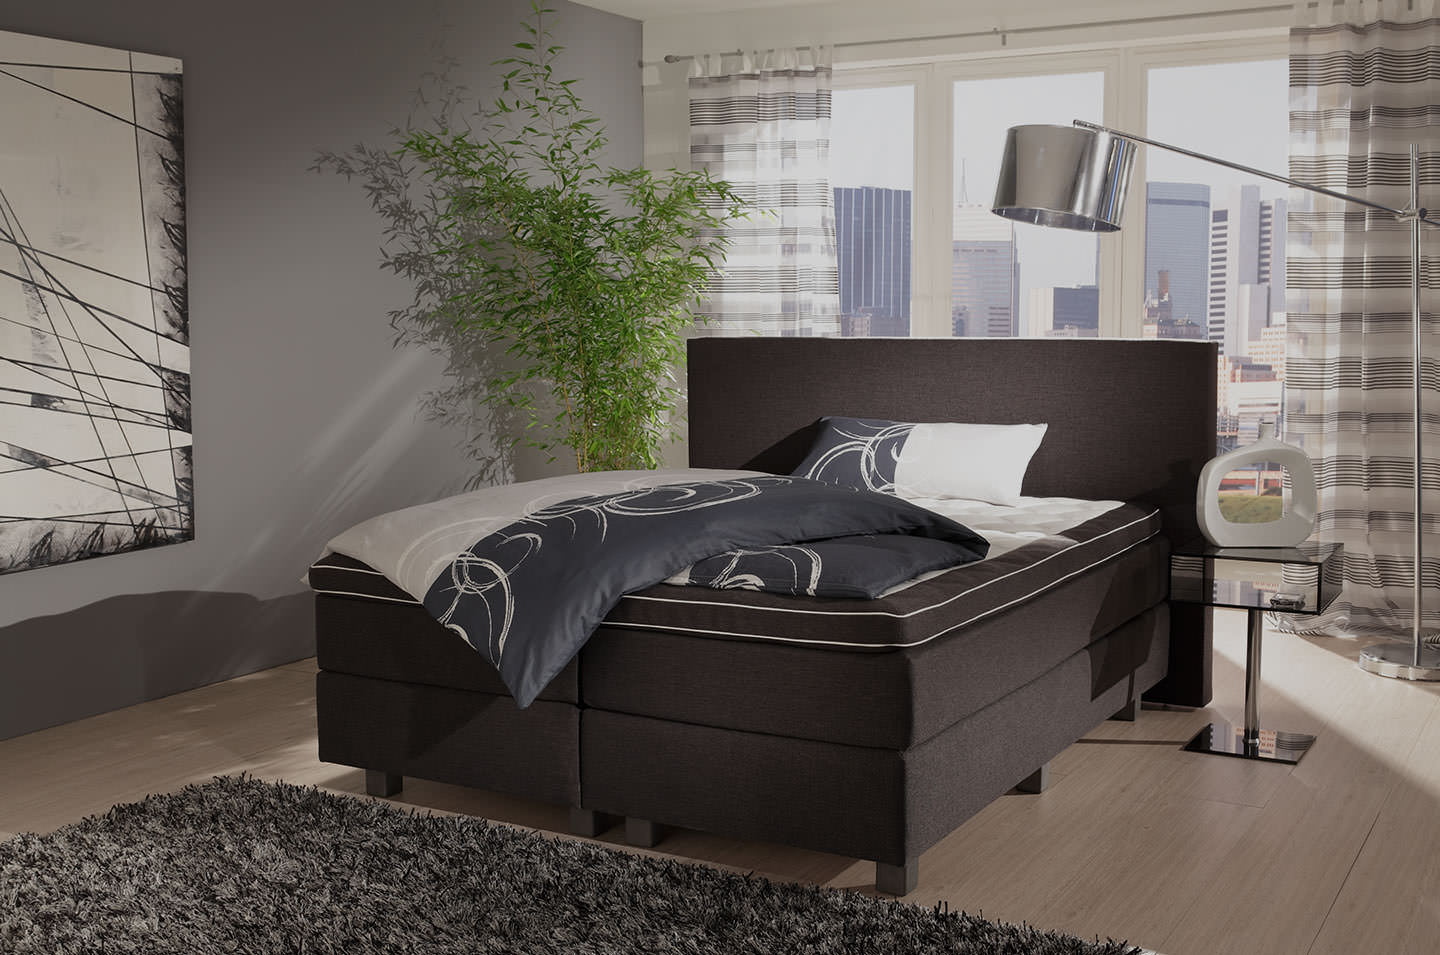 rwm schlafsysteme gmbh wasserbetten boxspringbetten. Black Bedroom Furniture Sets. Home Design Ideas